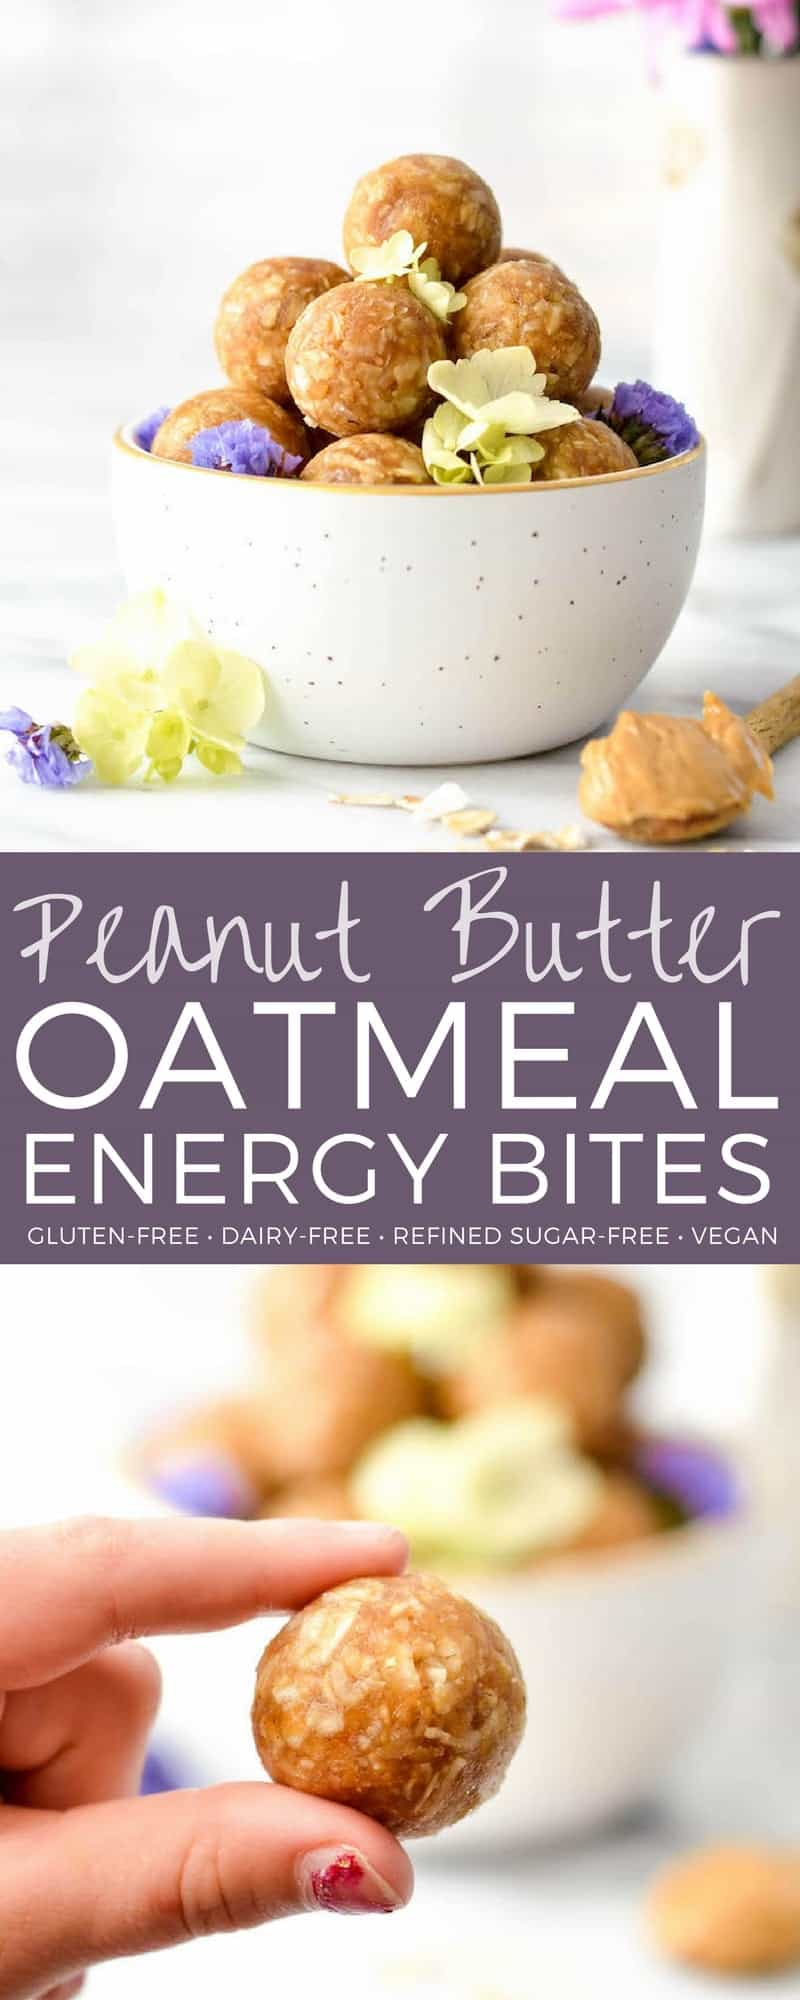 Peanut Butter Oatmeal Balls! An easy, healthy snack recipe made in 5 minutes with only 8 ingredients! The perfect little energy bite! Gluten-free, dairy-free, refined sugar free and vegan-friendly! #energyballs #glutenfree #dairyfree #vegan #energybites #peanutbutter #oatmeal #snack